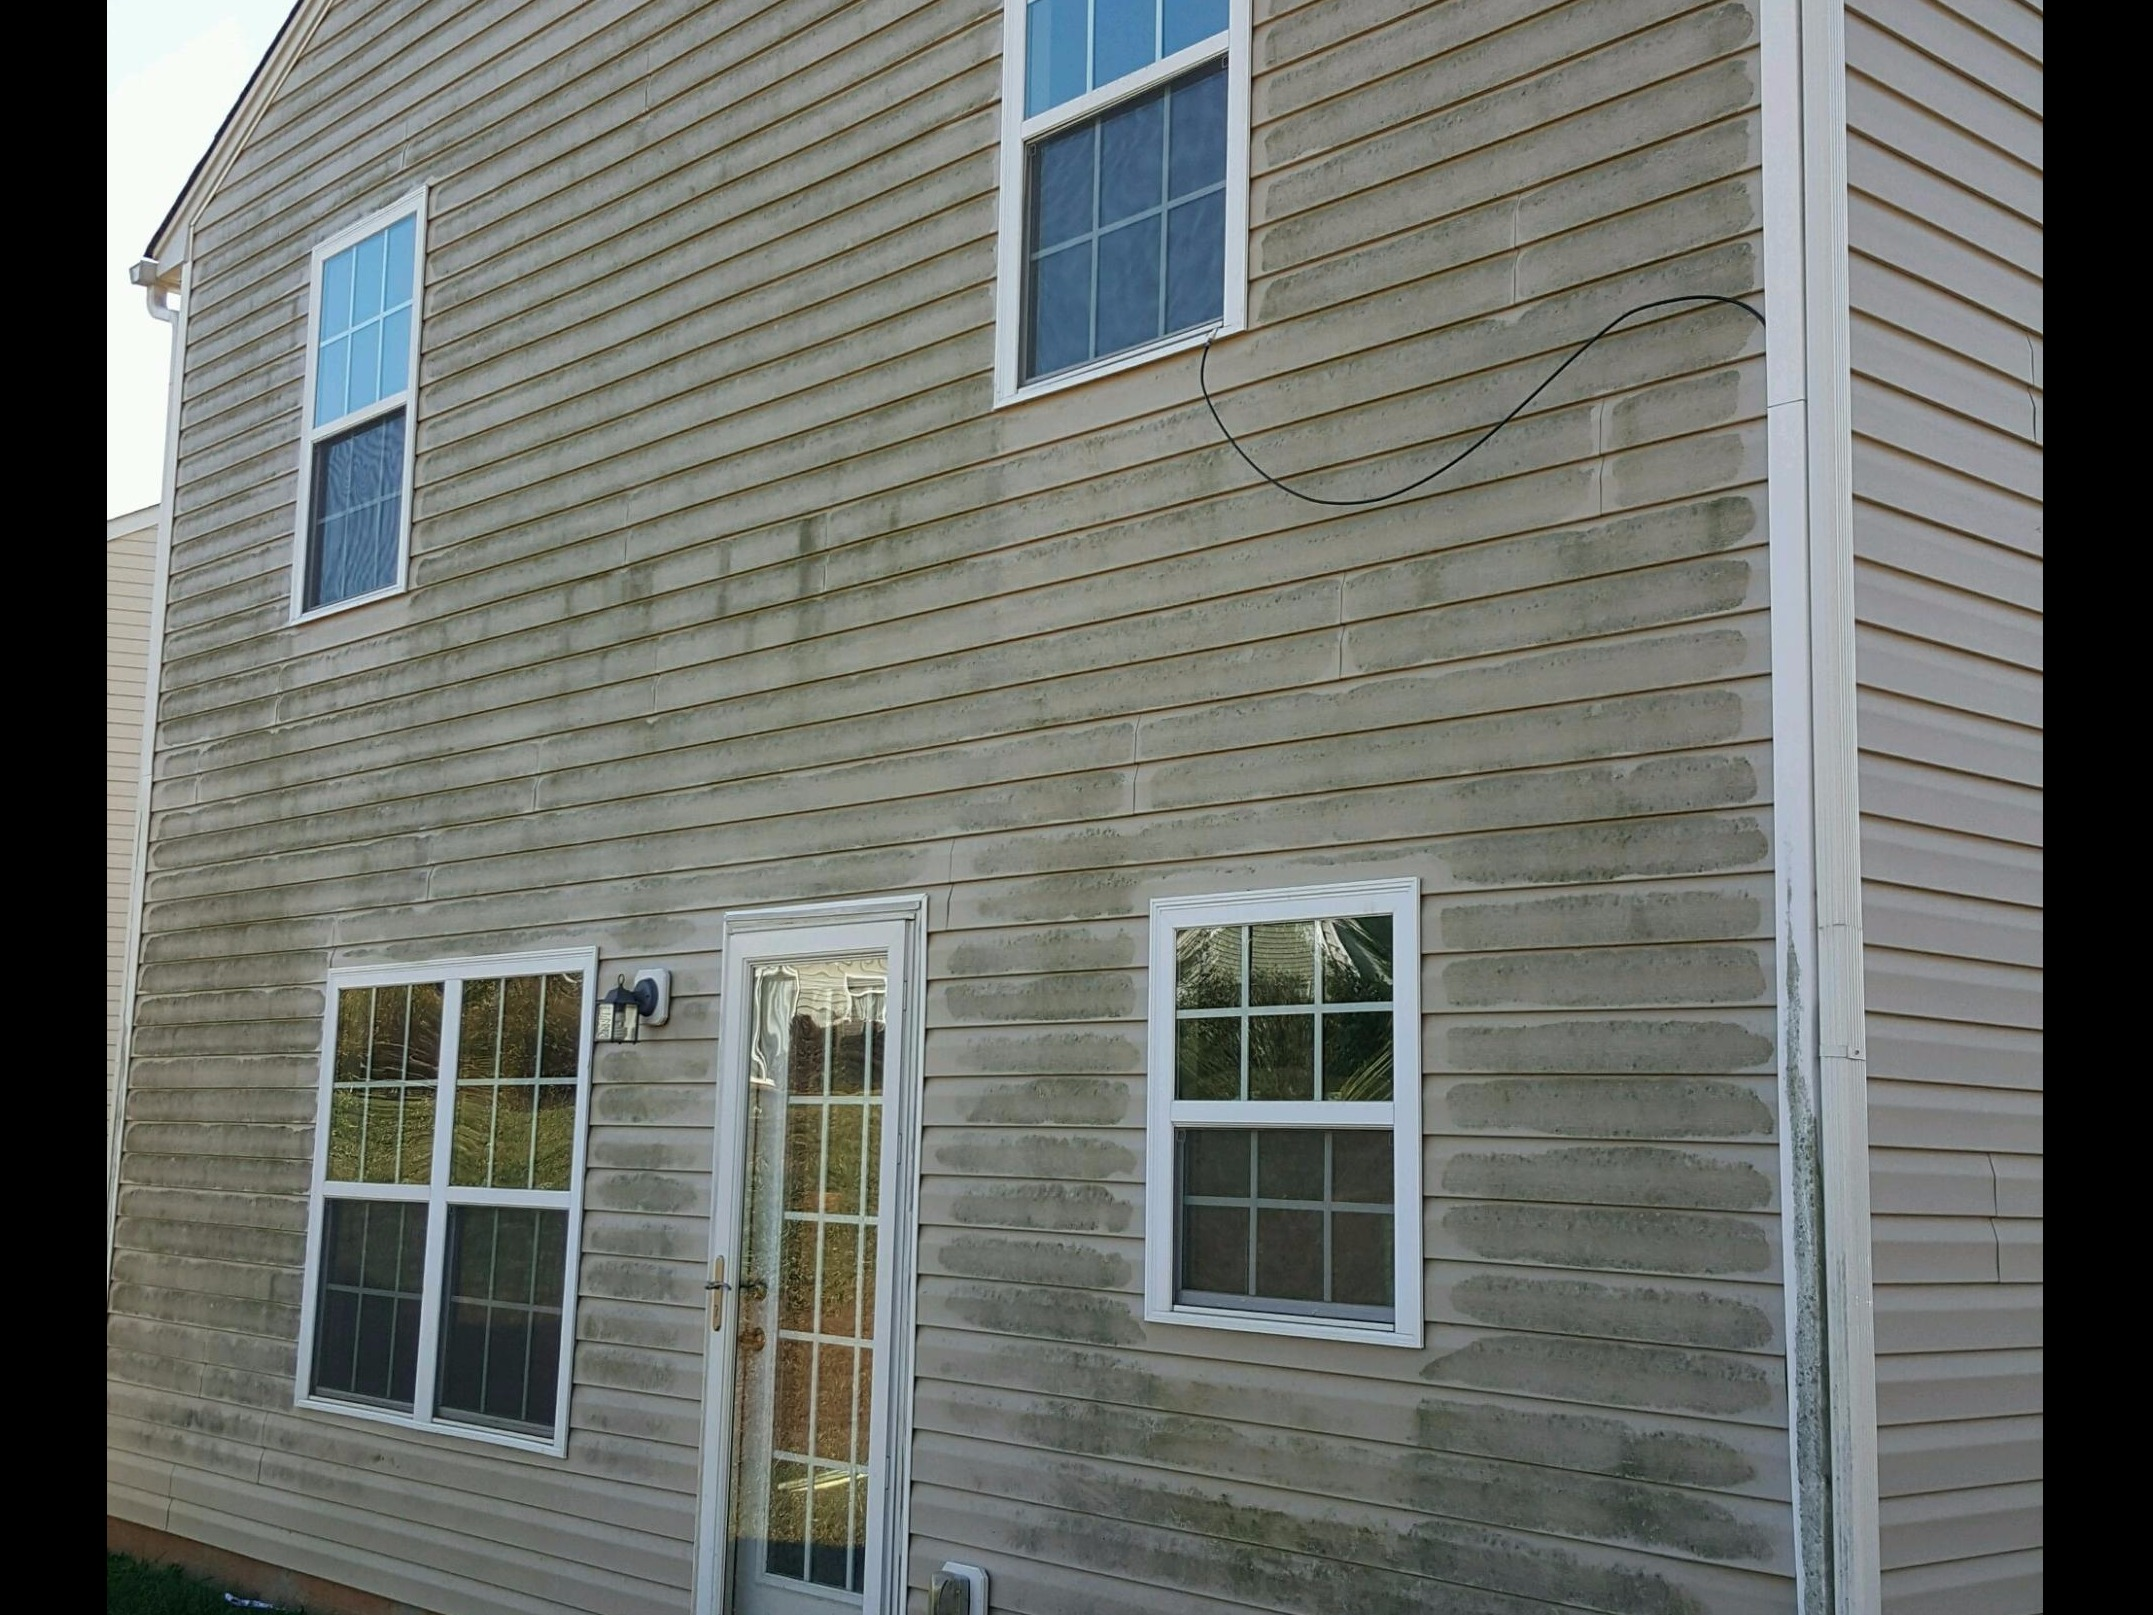 Vinyl Siding Driveway Gutter Cleaning More Cornelius Nc Ace Cleaning Services